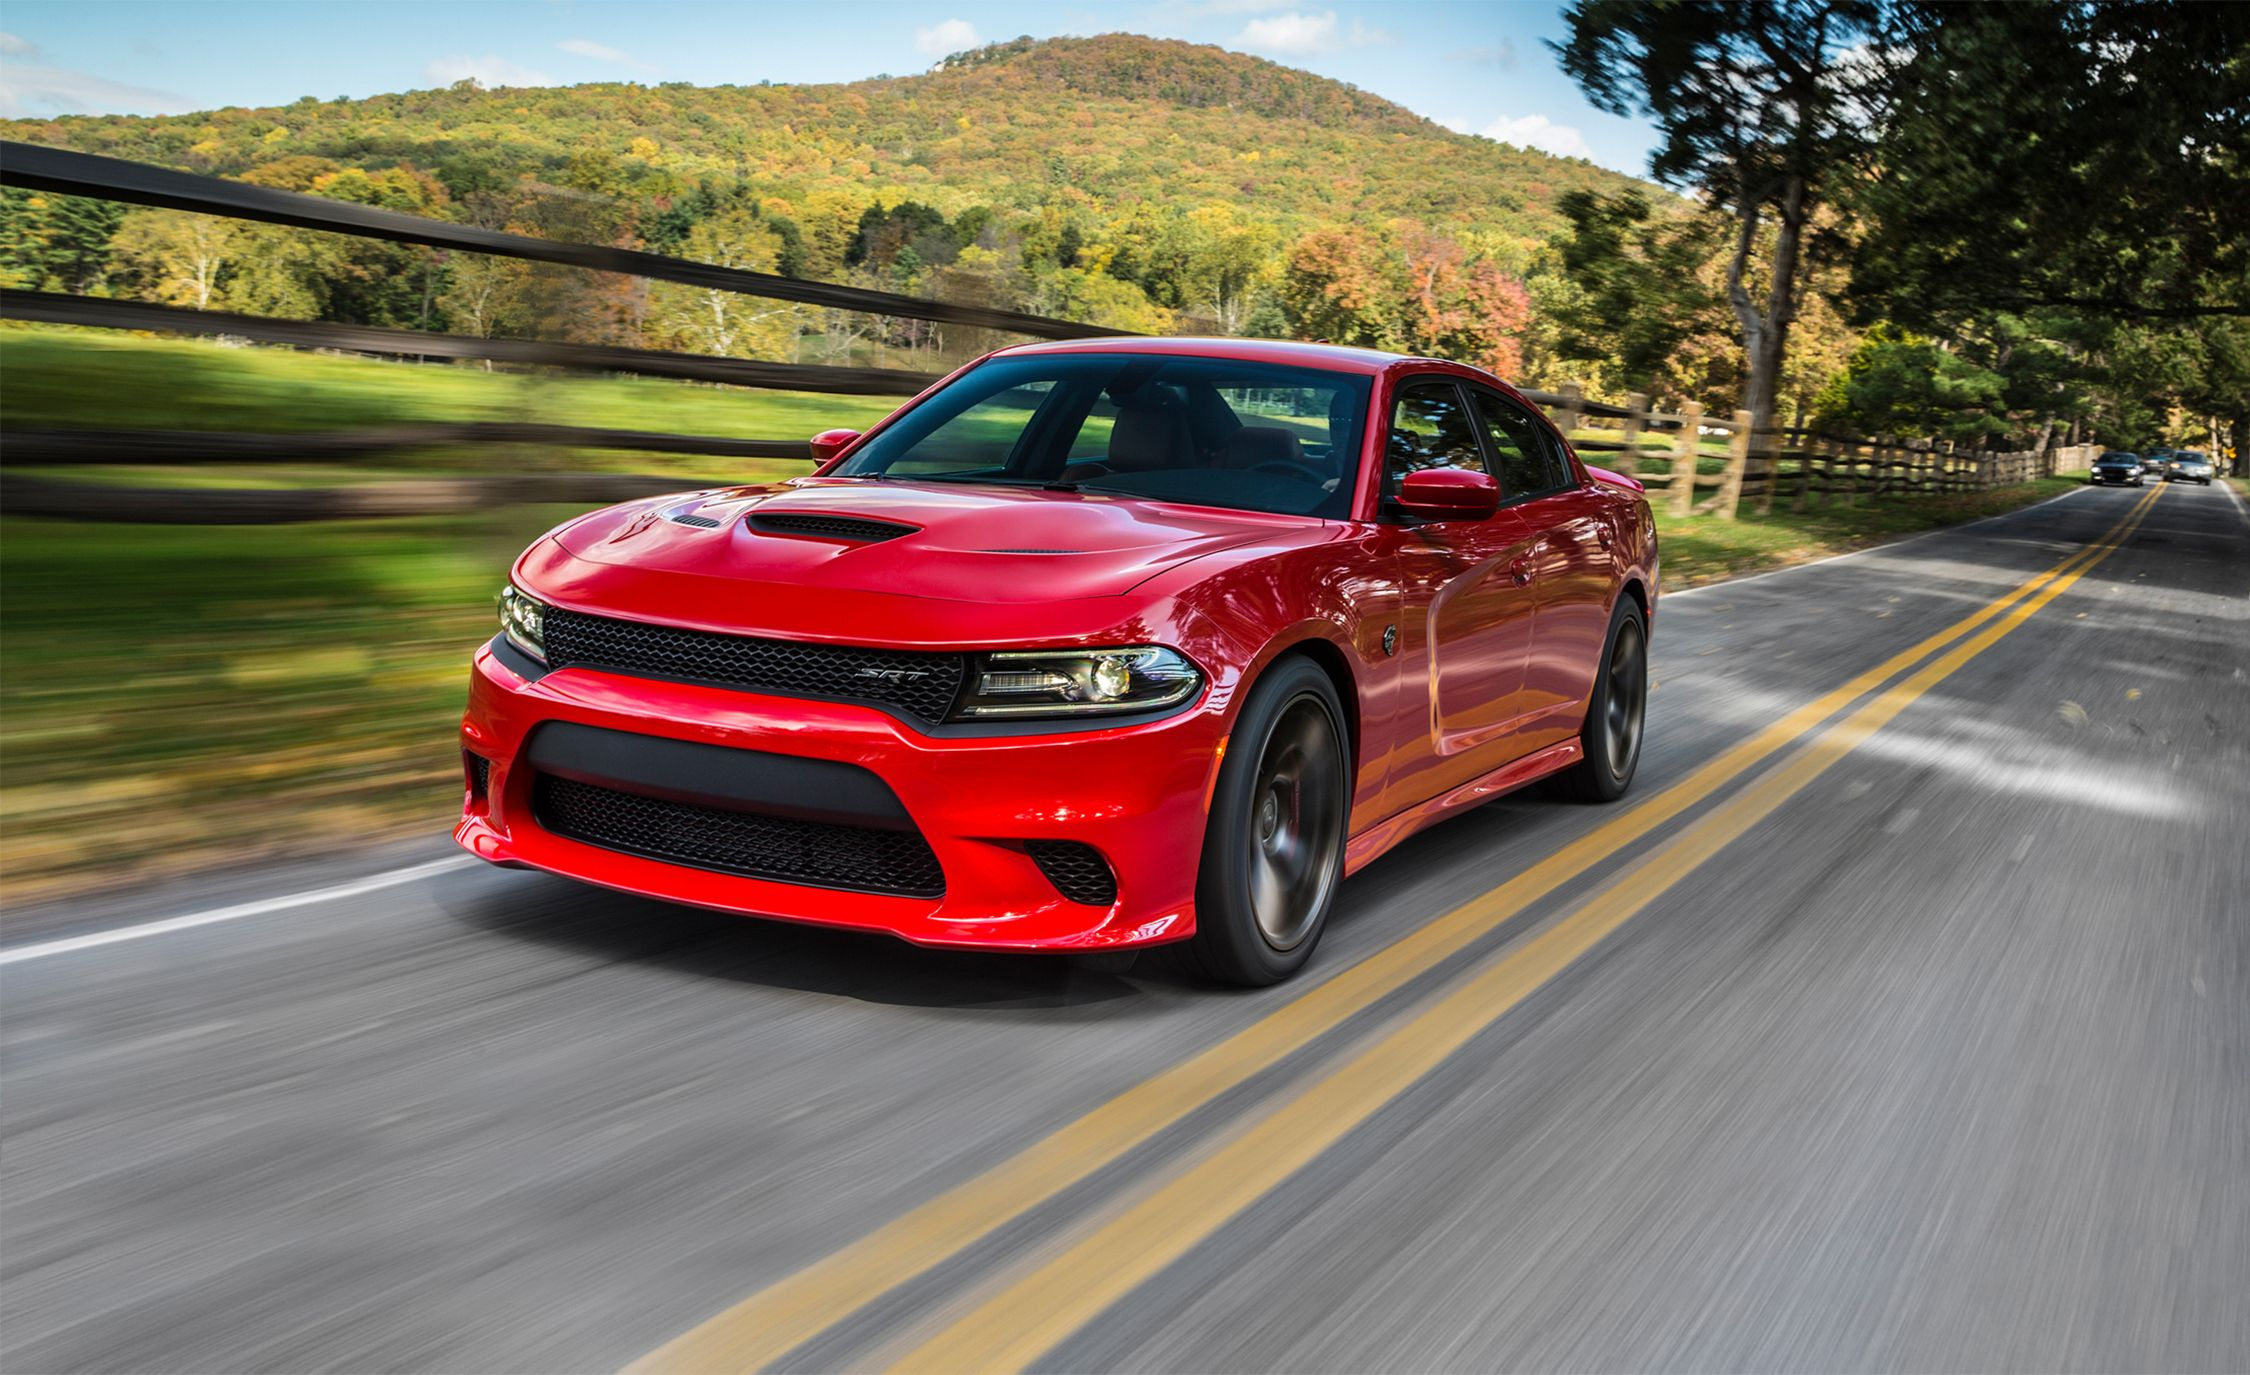 17 Charger Hellcat >> 2019 Dodge Charger Srt Srt Hellcat Reviews Dodge Charger Srt